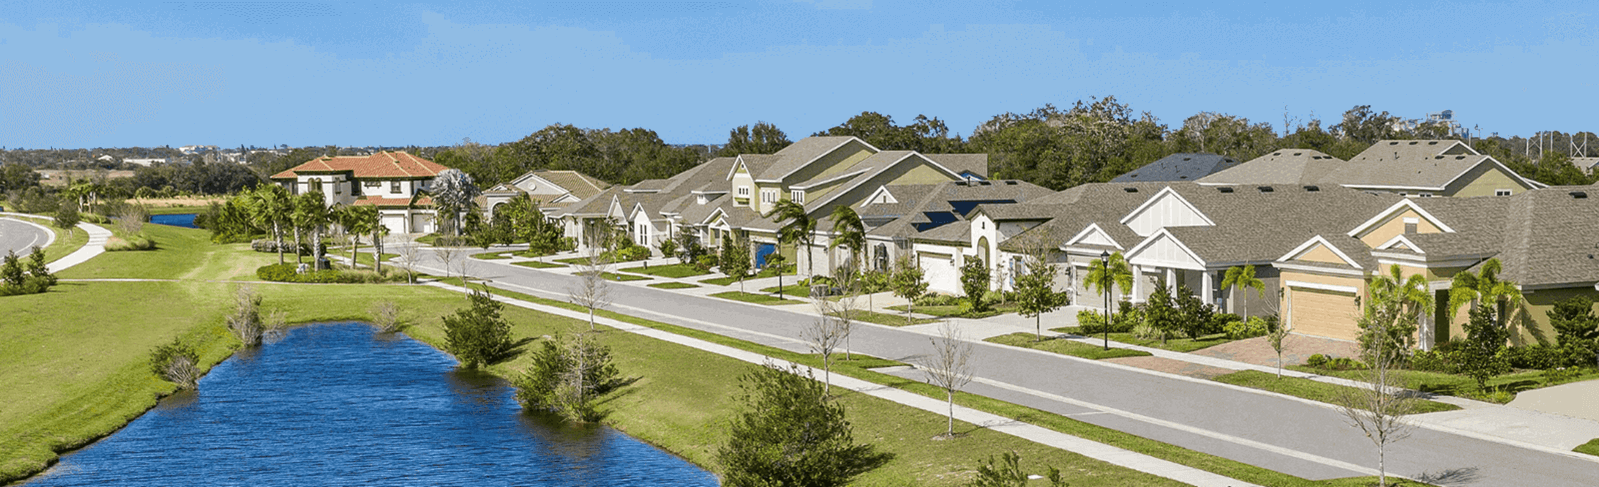 Homes along a lake in Waterset, new homes community in Apollo Beach.